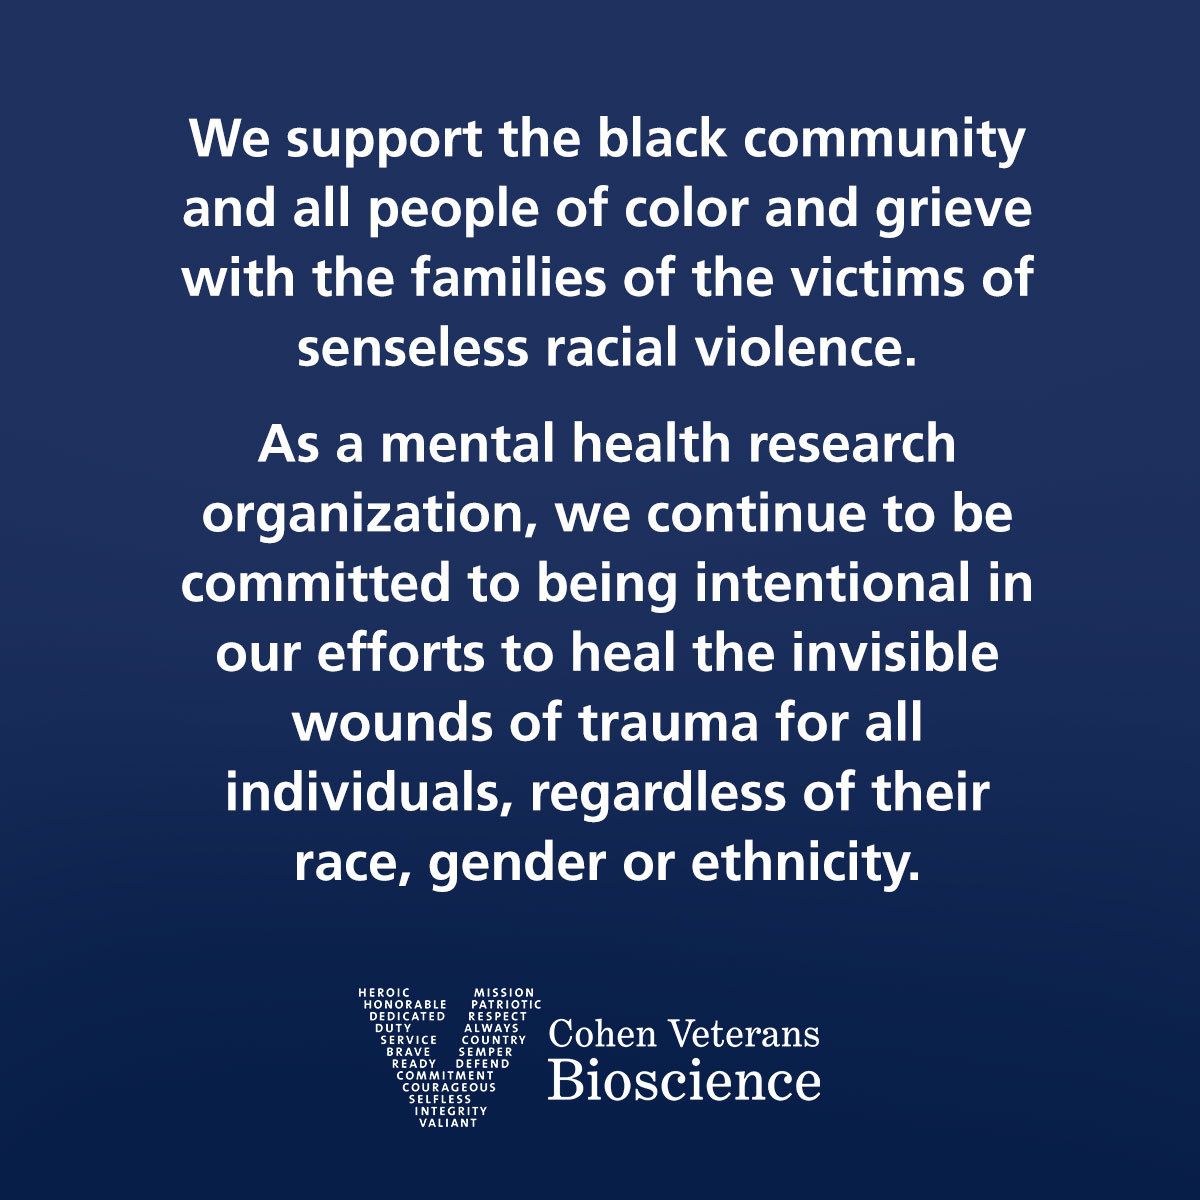 Cohen Veterans Bioscience Statement on Racial Justice